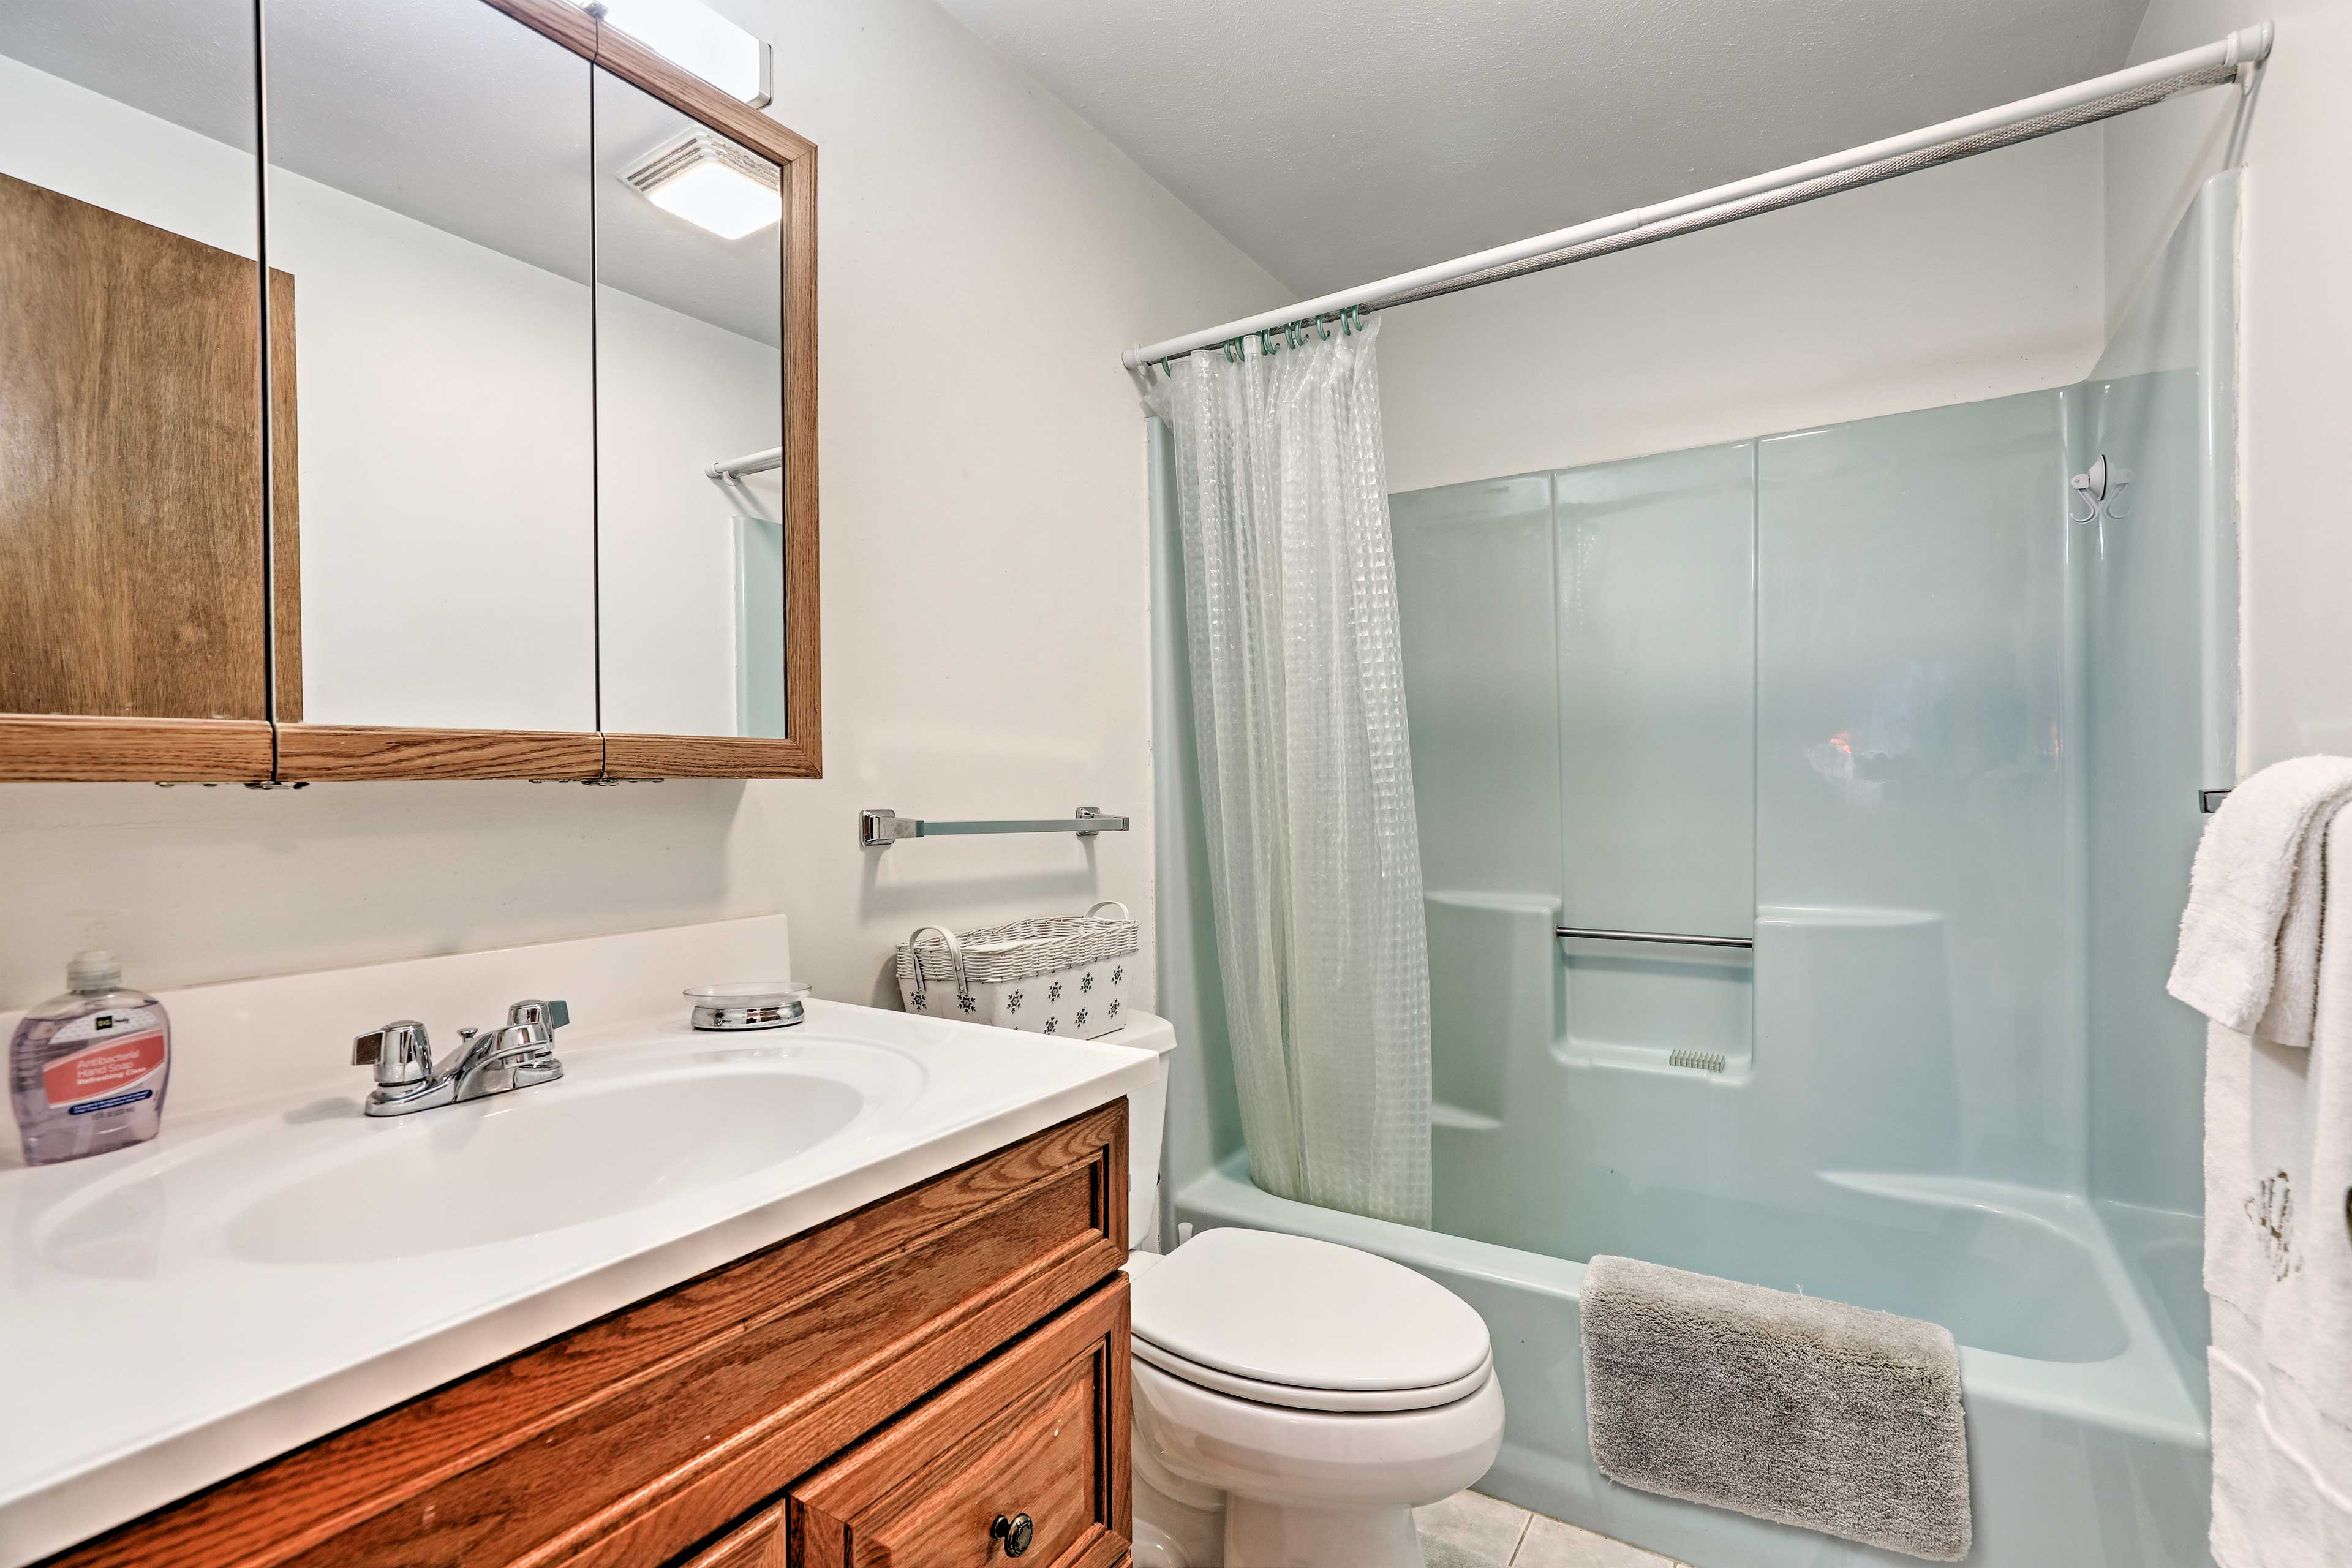 The full bathroom features a single vanity and shower/tub combo.